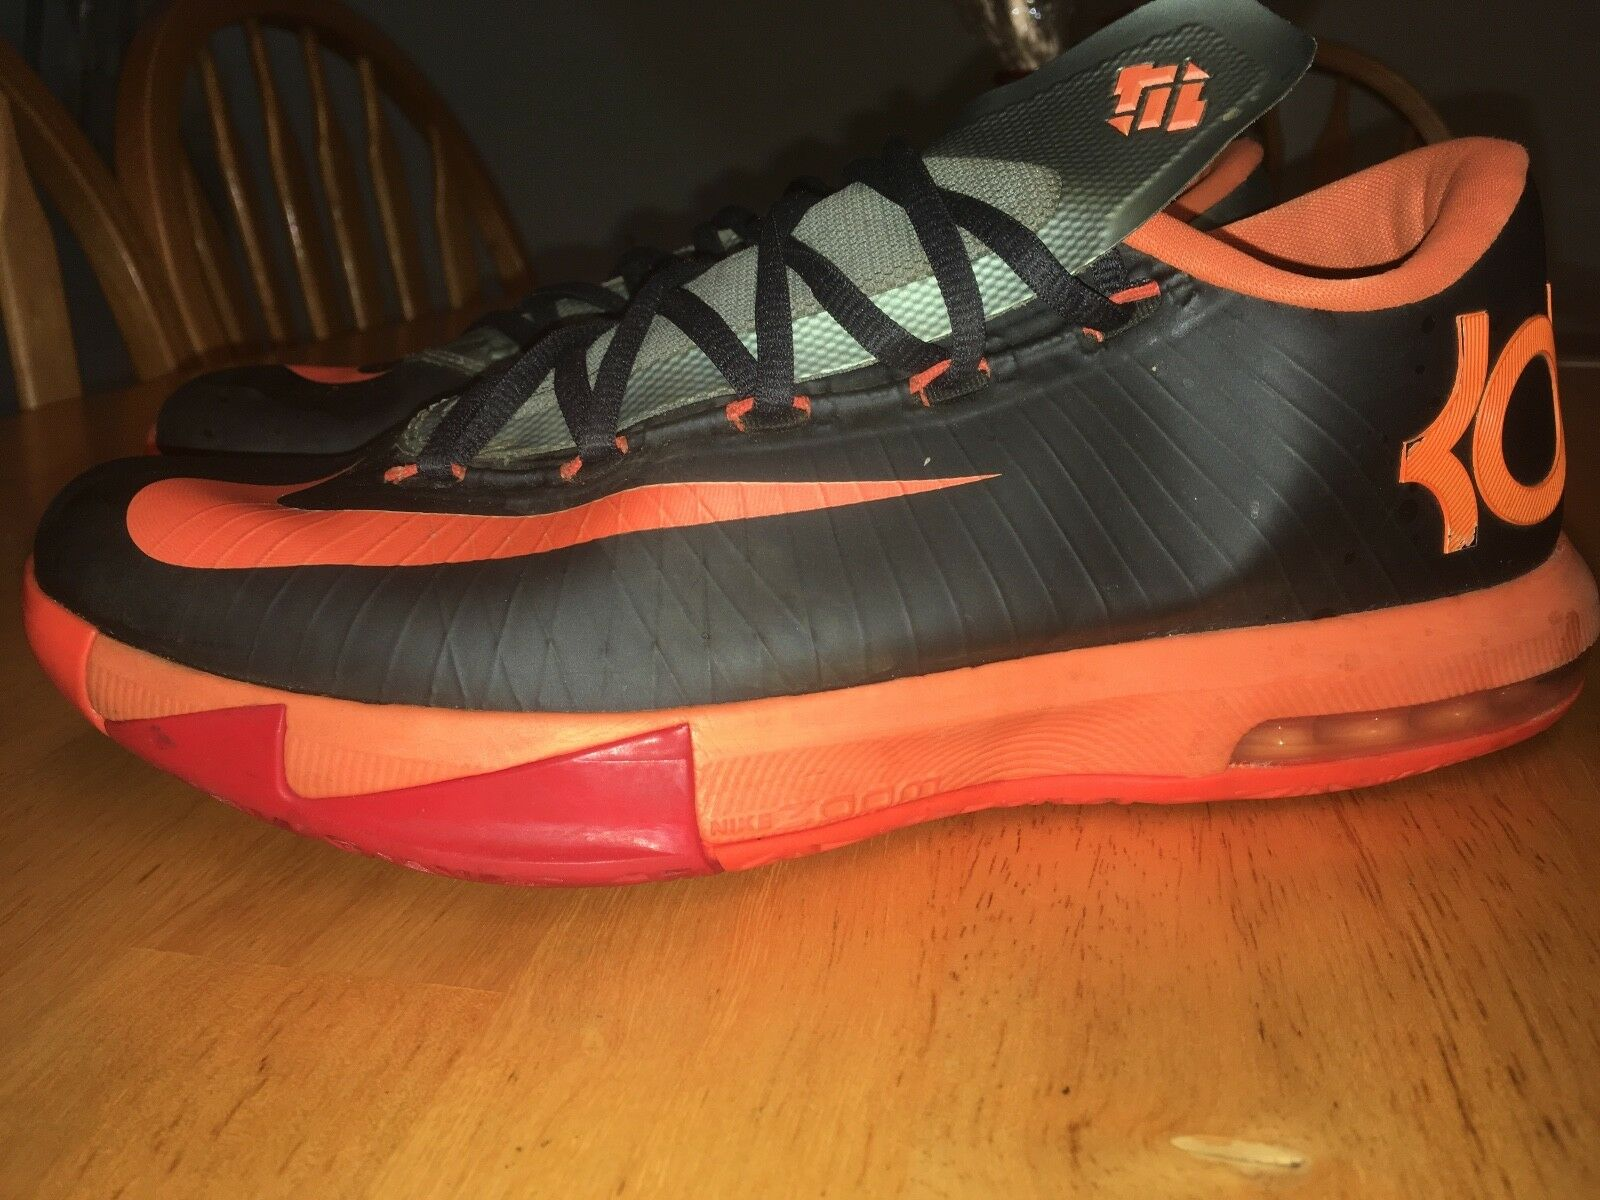 Nike KD 6 Silver/Orange/Black size 8